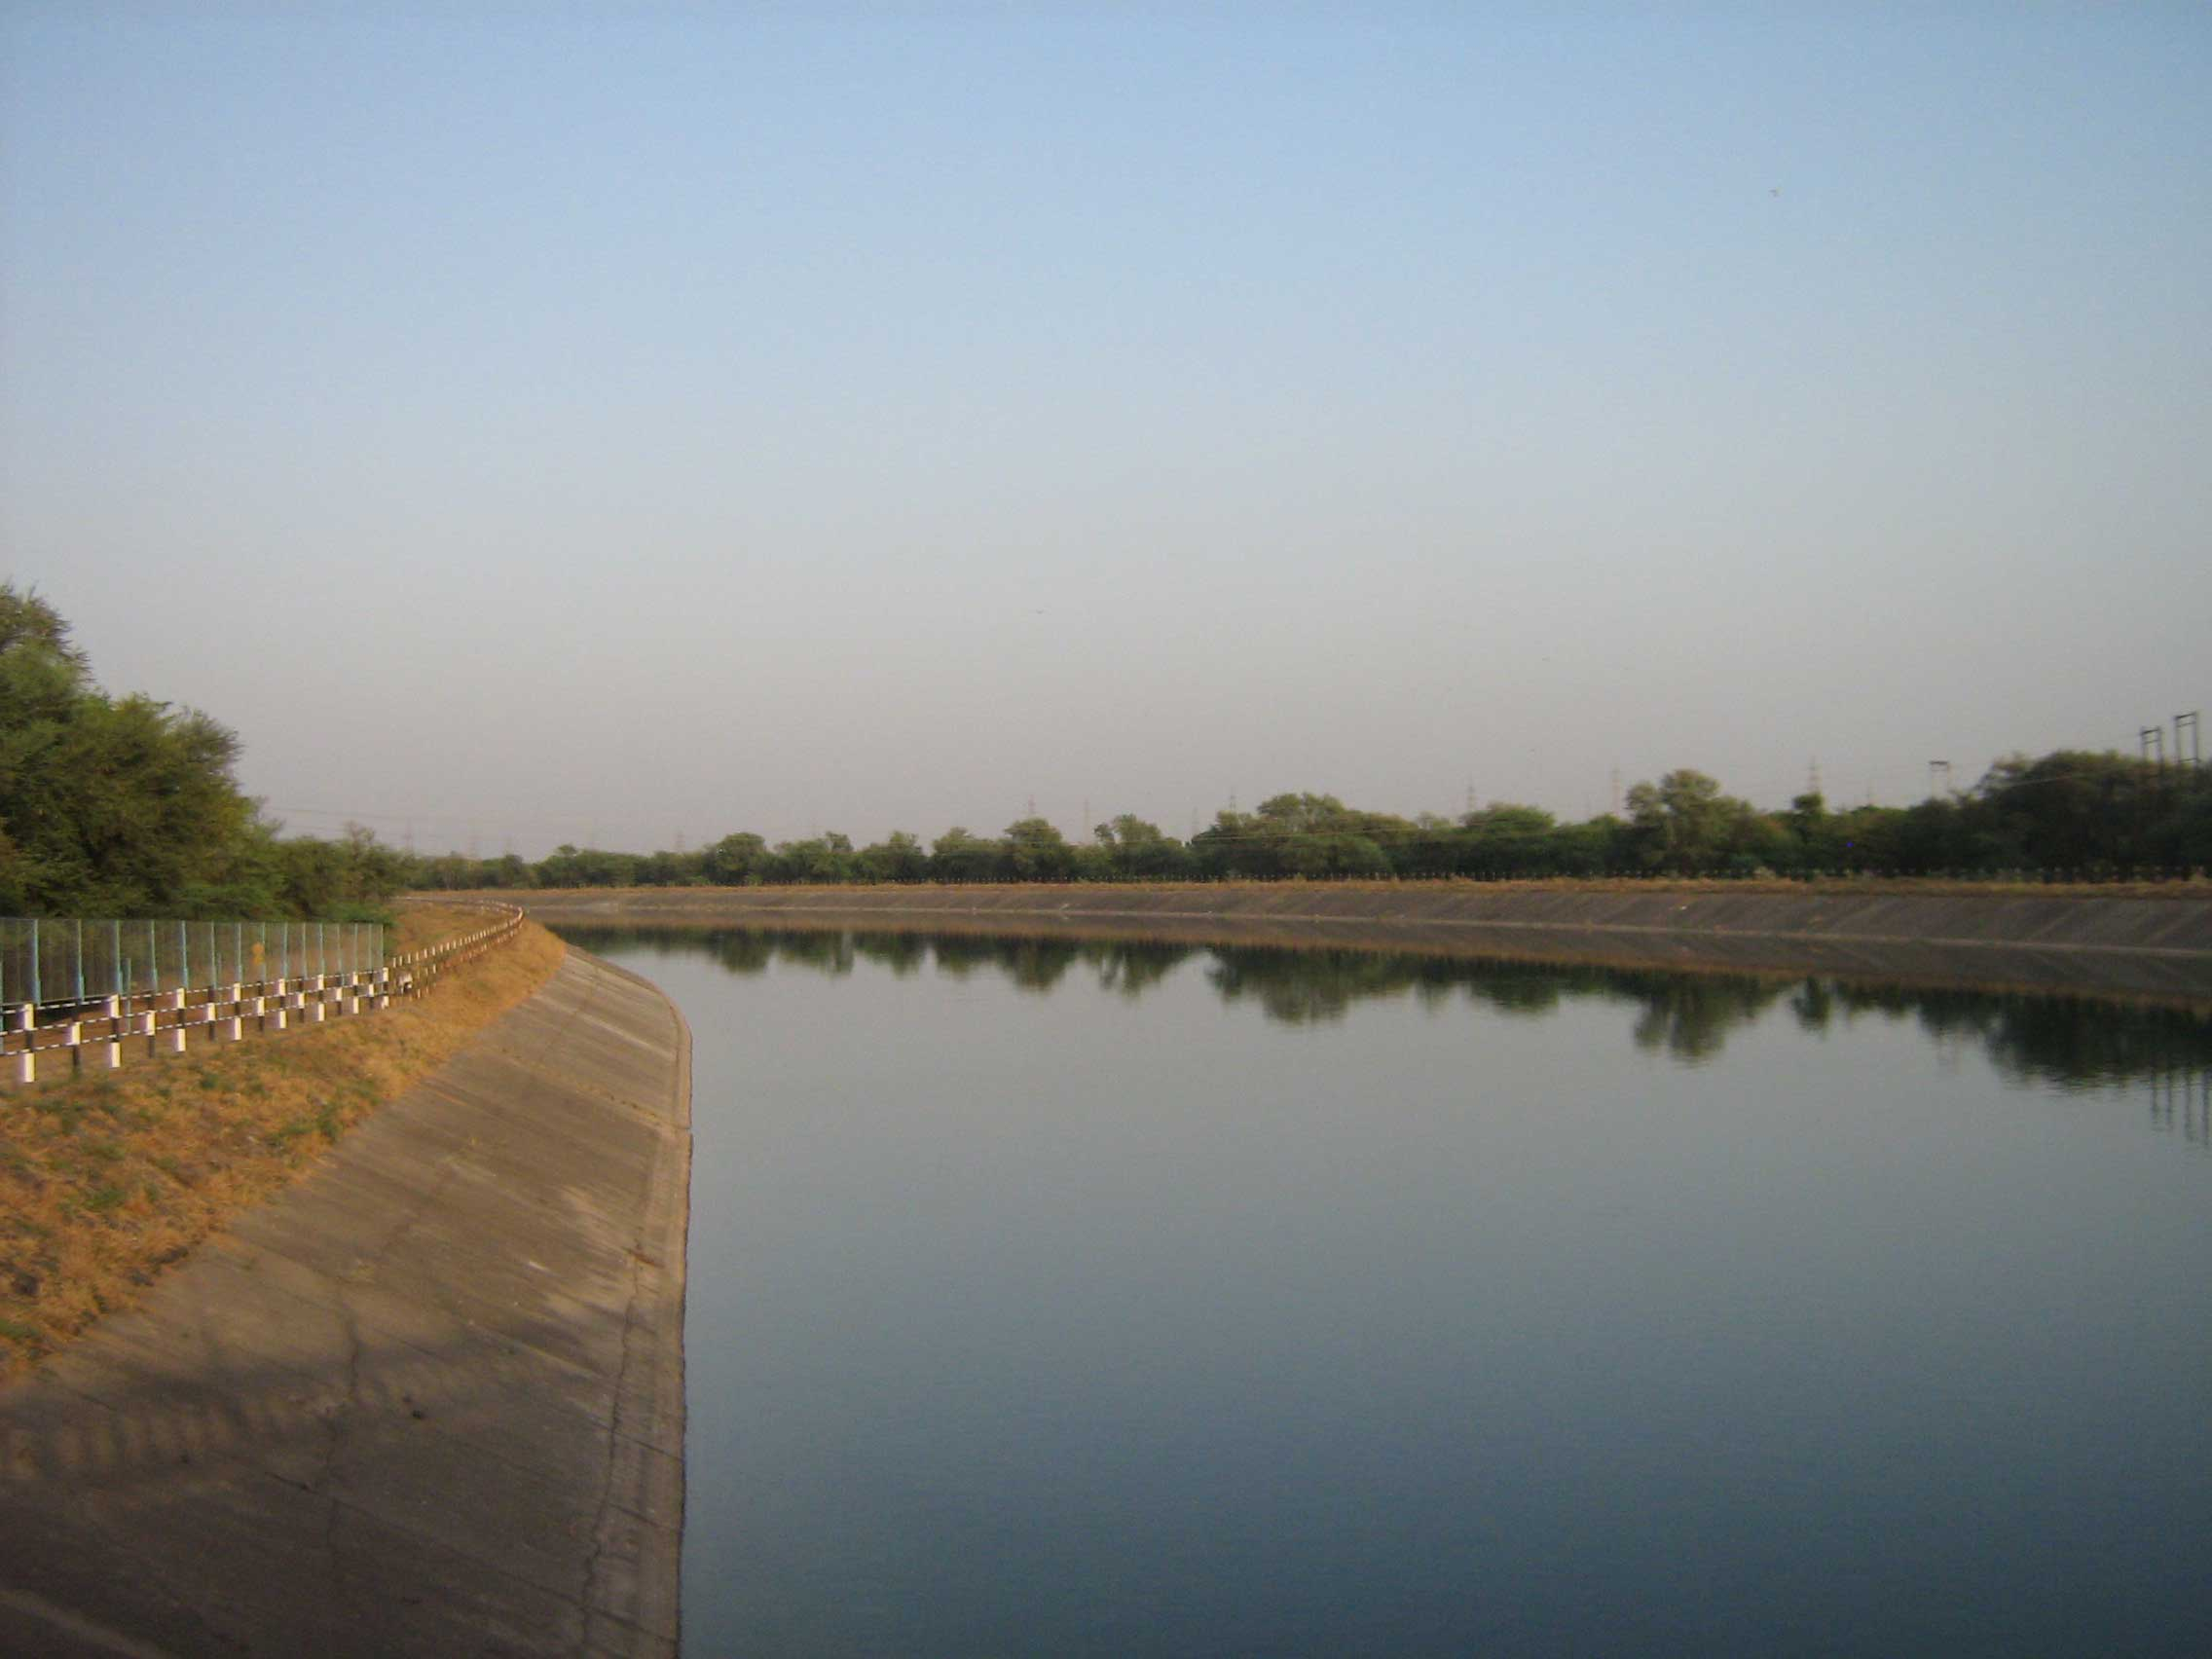 An irrigation canal in the northwestern Indian state of Gujarat. Image credit: Andres Baeza